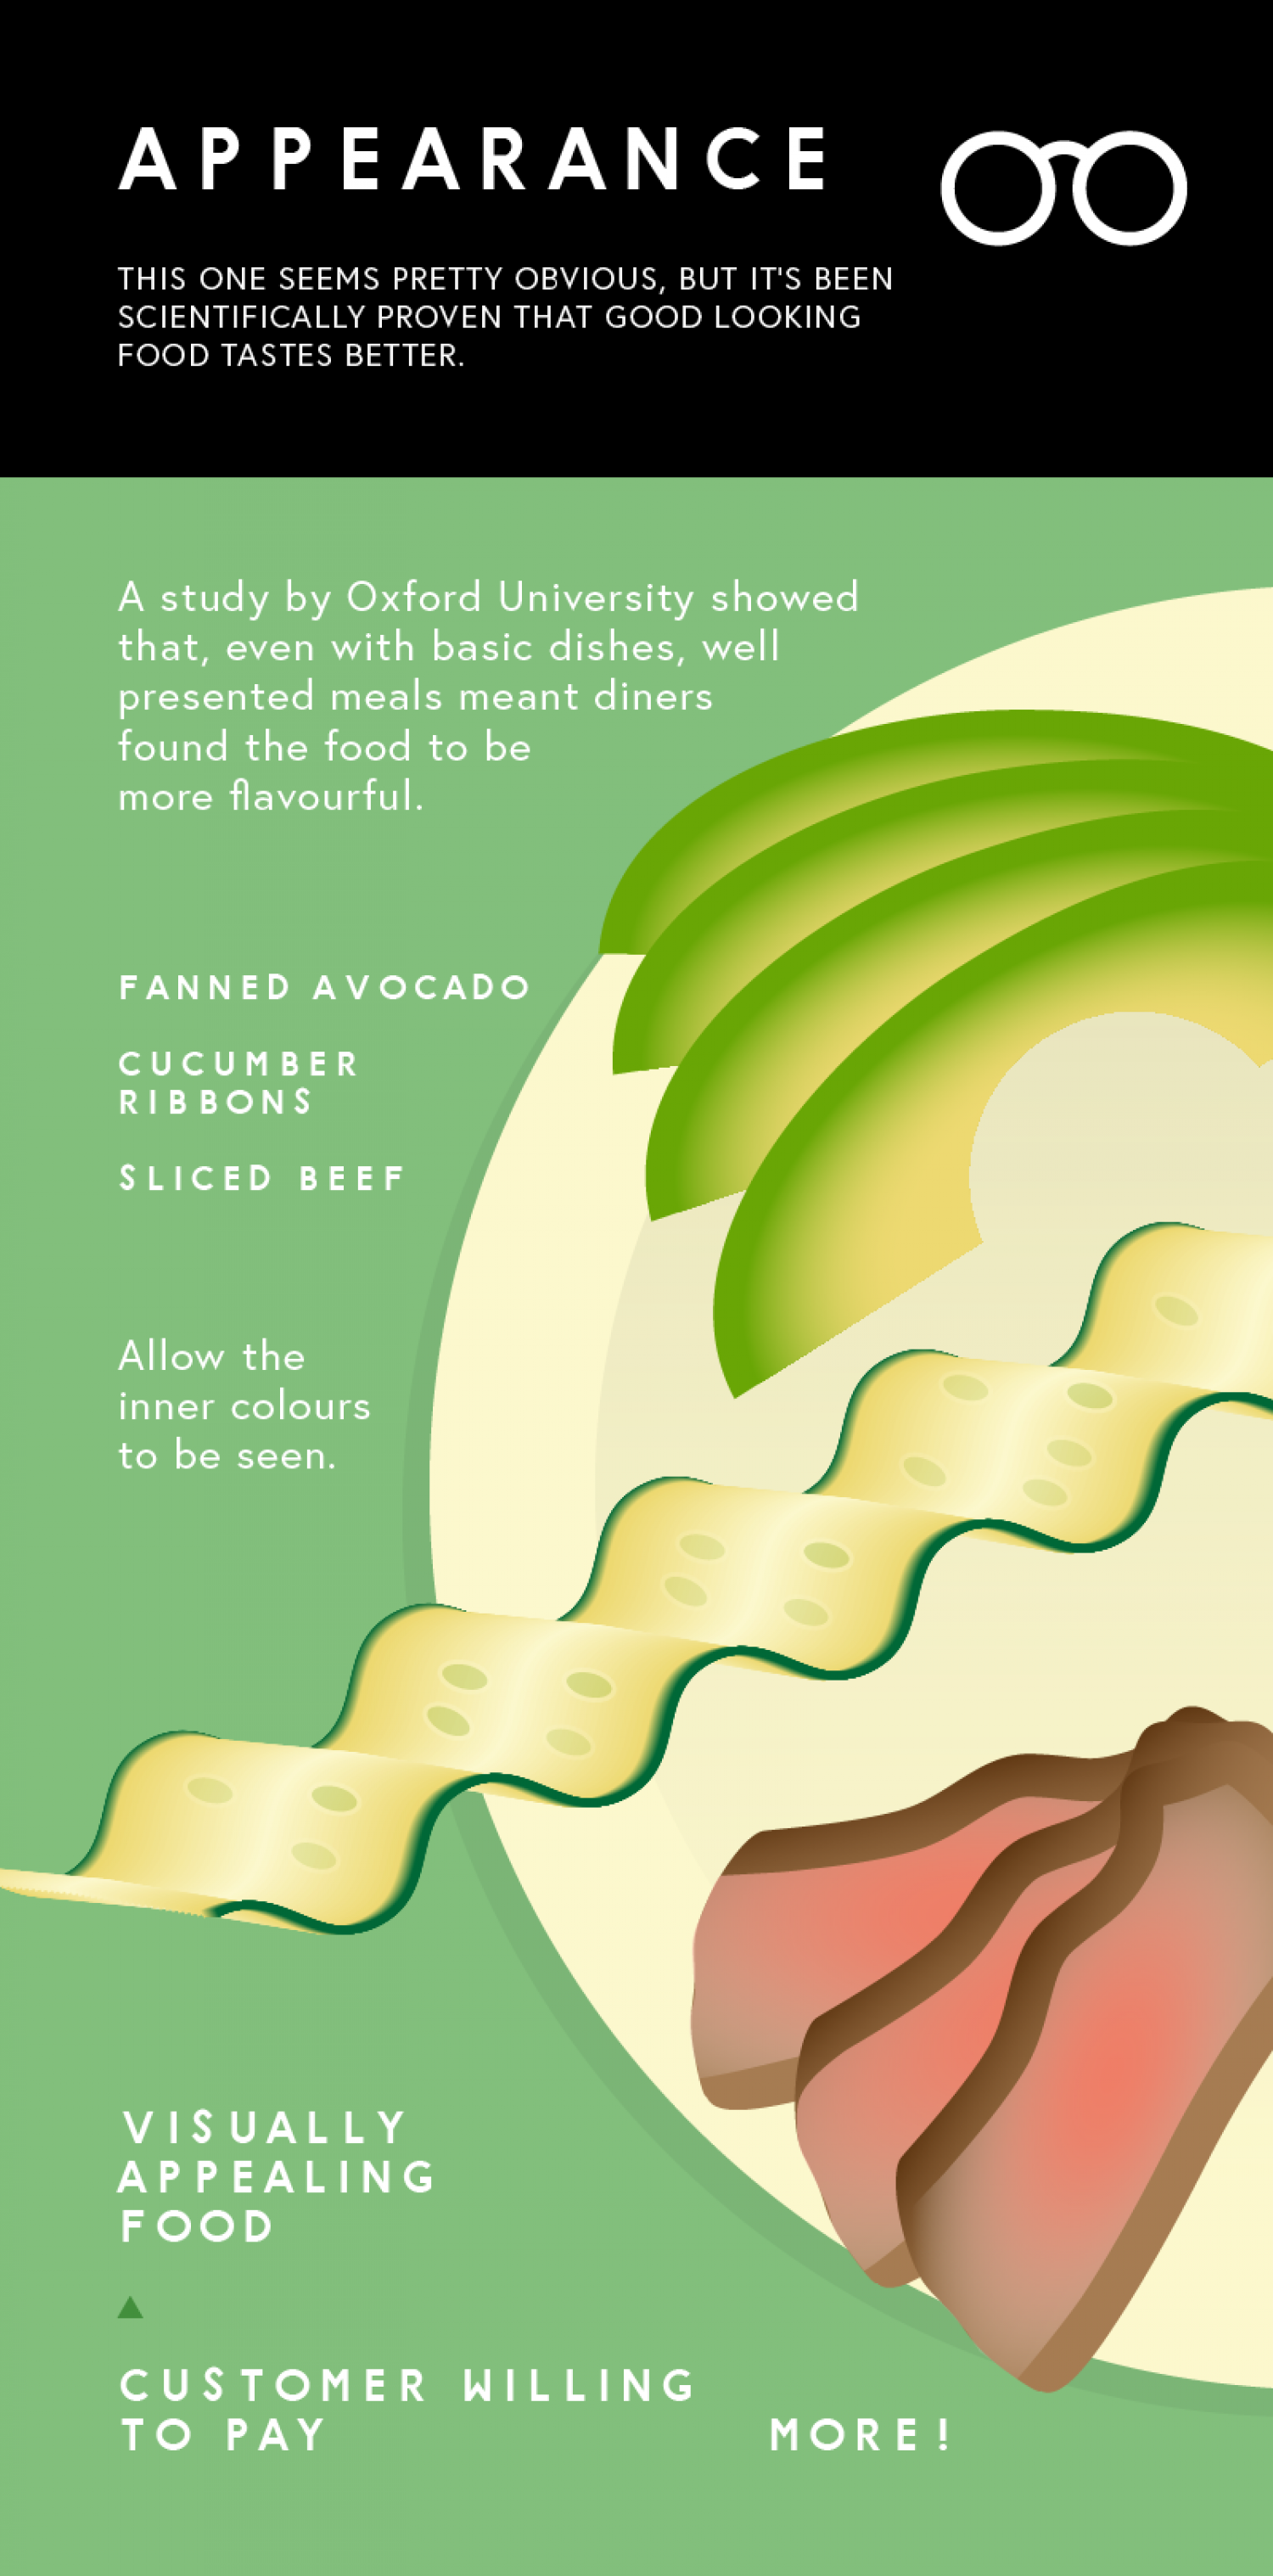 How Food Appearance Affects Our Buying Habits Infographic